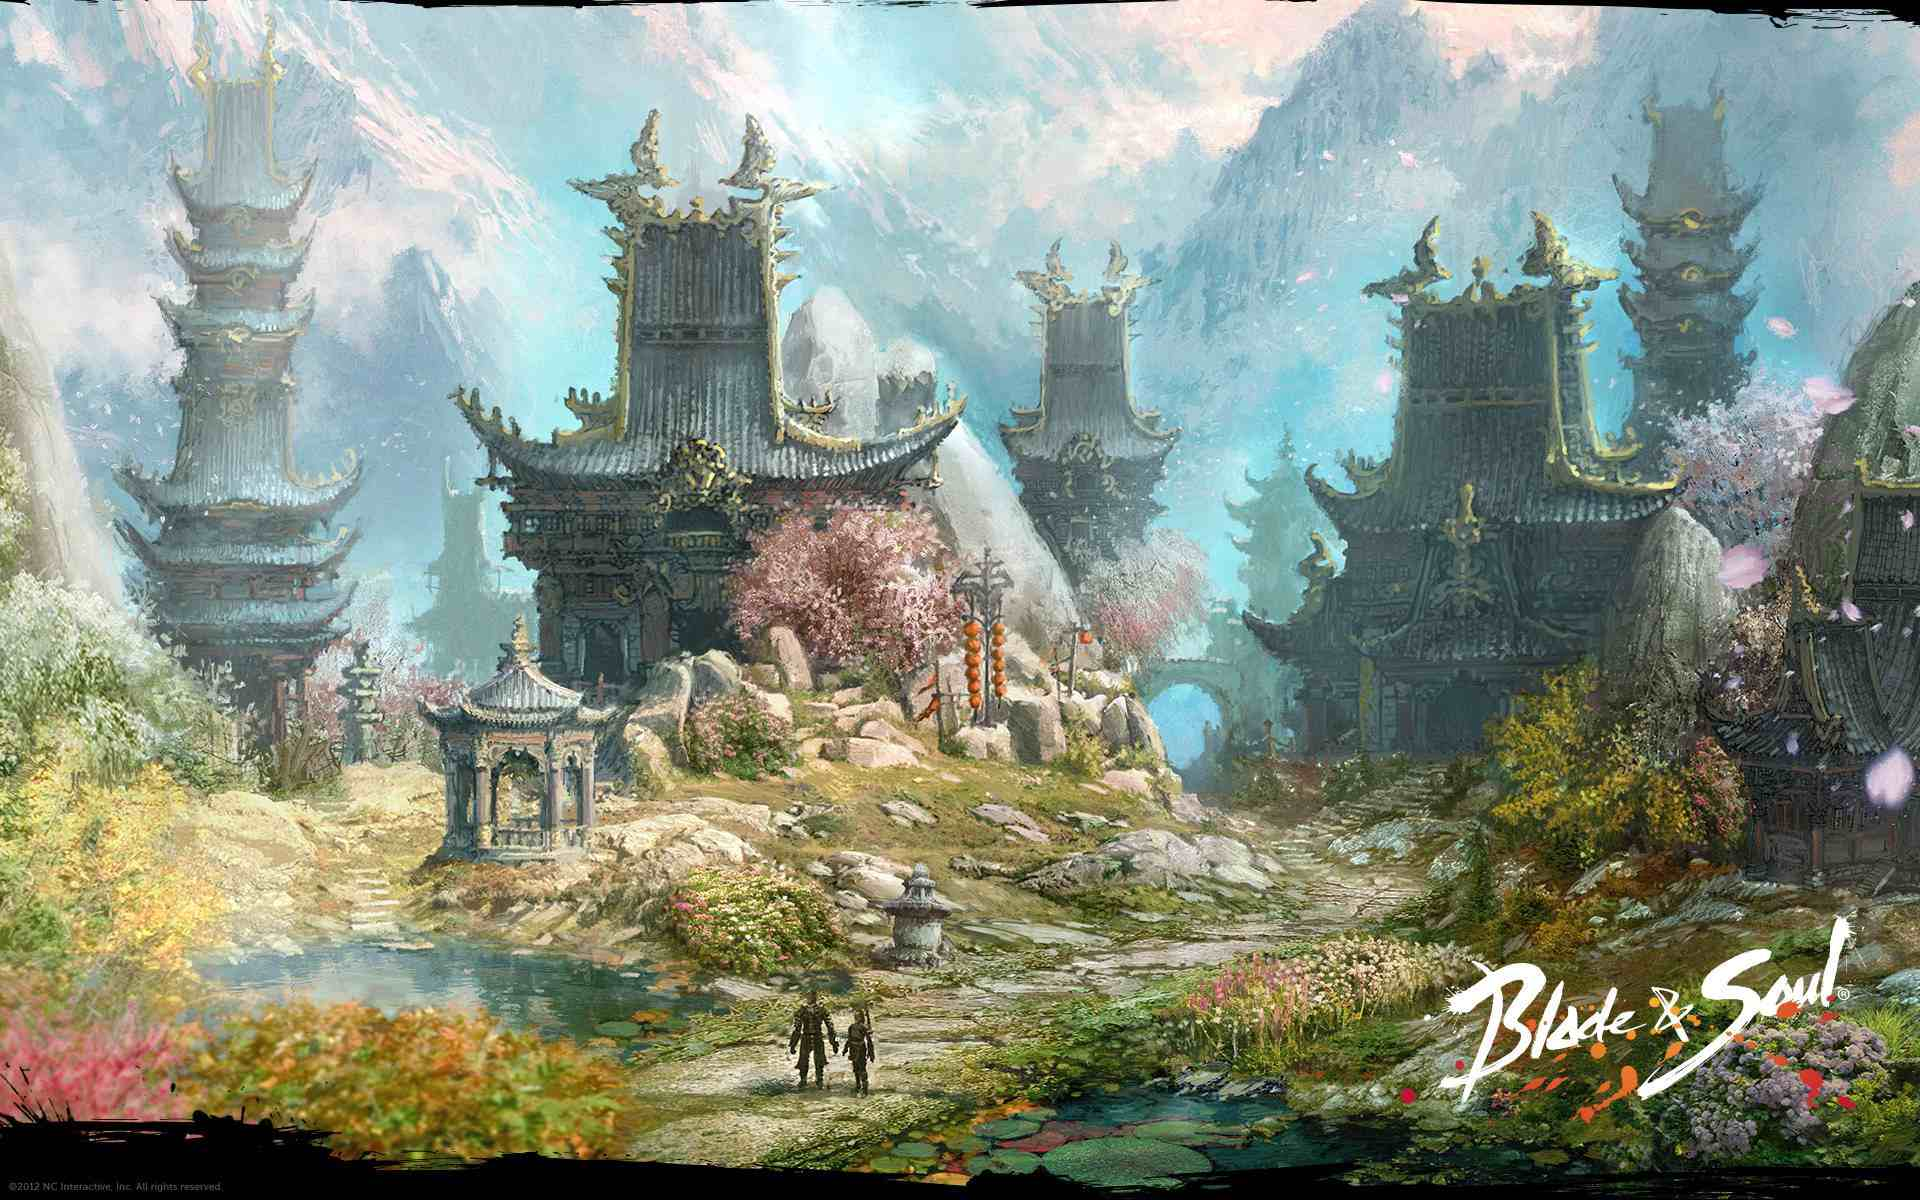 Blade & Soul Wallpapers